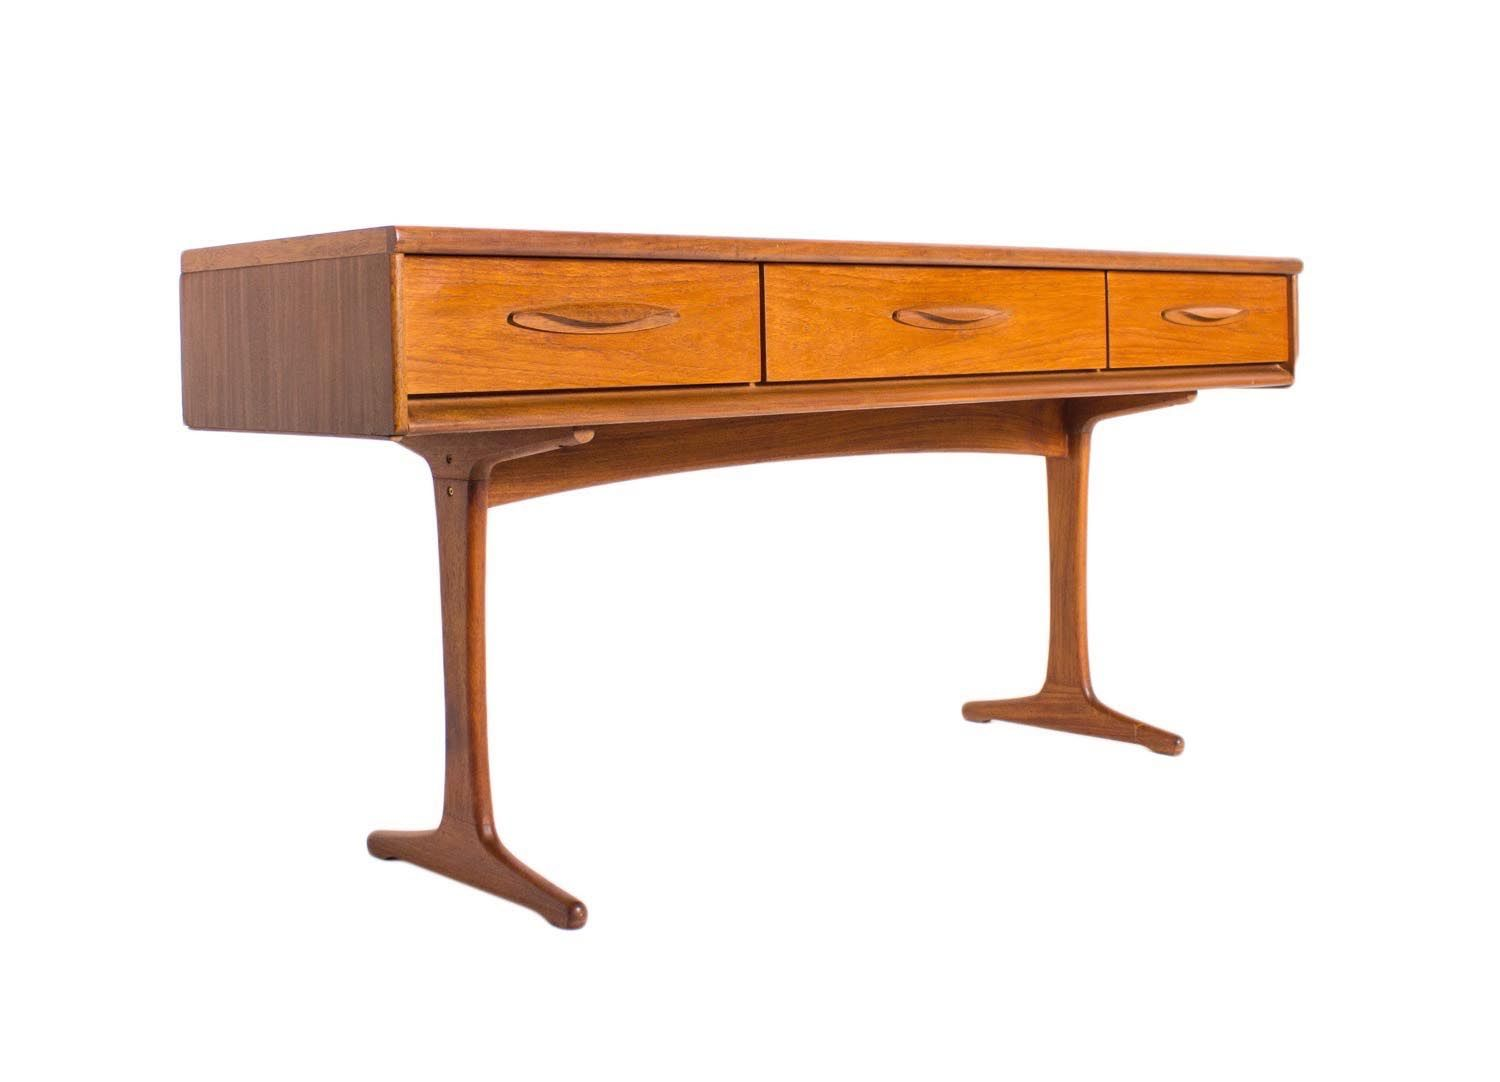 Vintage teak console table from austinsuite for sale at pamono vintage teak console table from austinsuite geotapseo Image collections